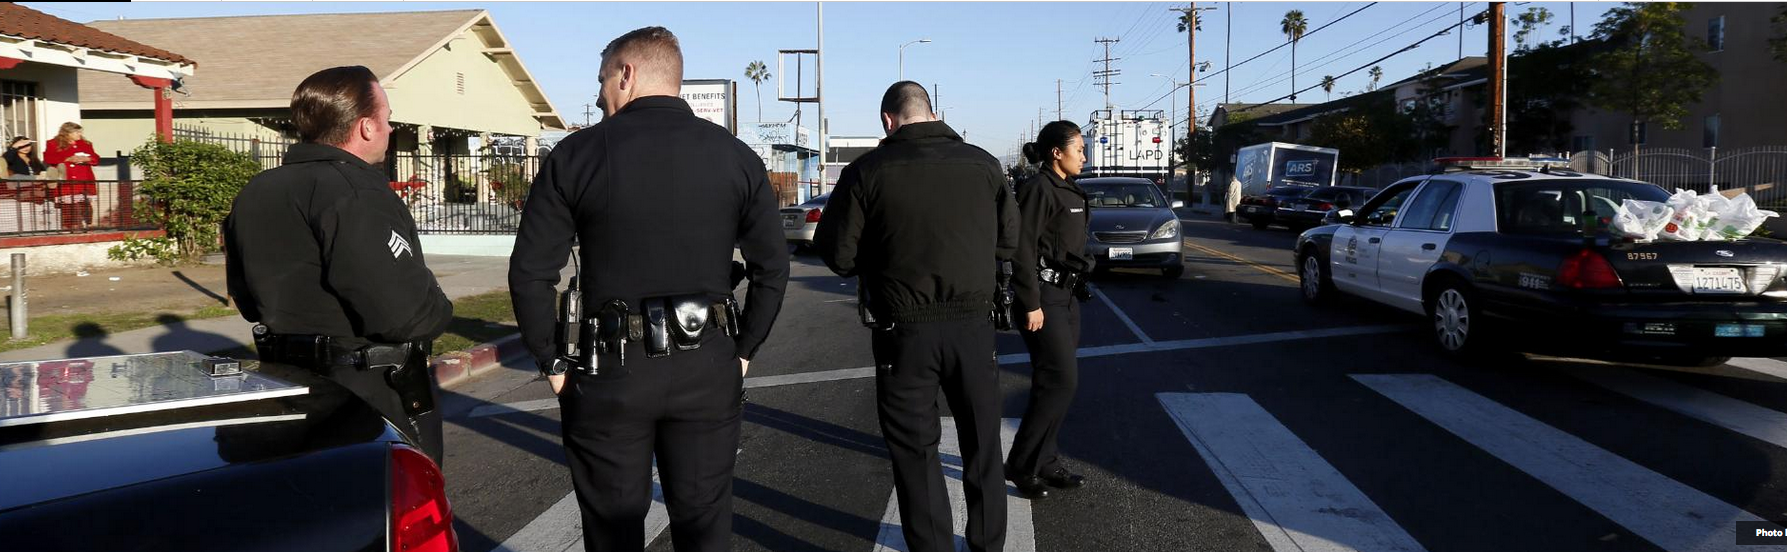 California's Justice System Numbers Show a Big Problem When It Comes to Race